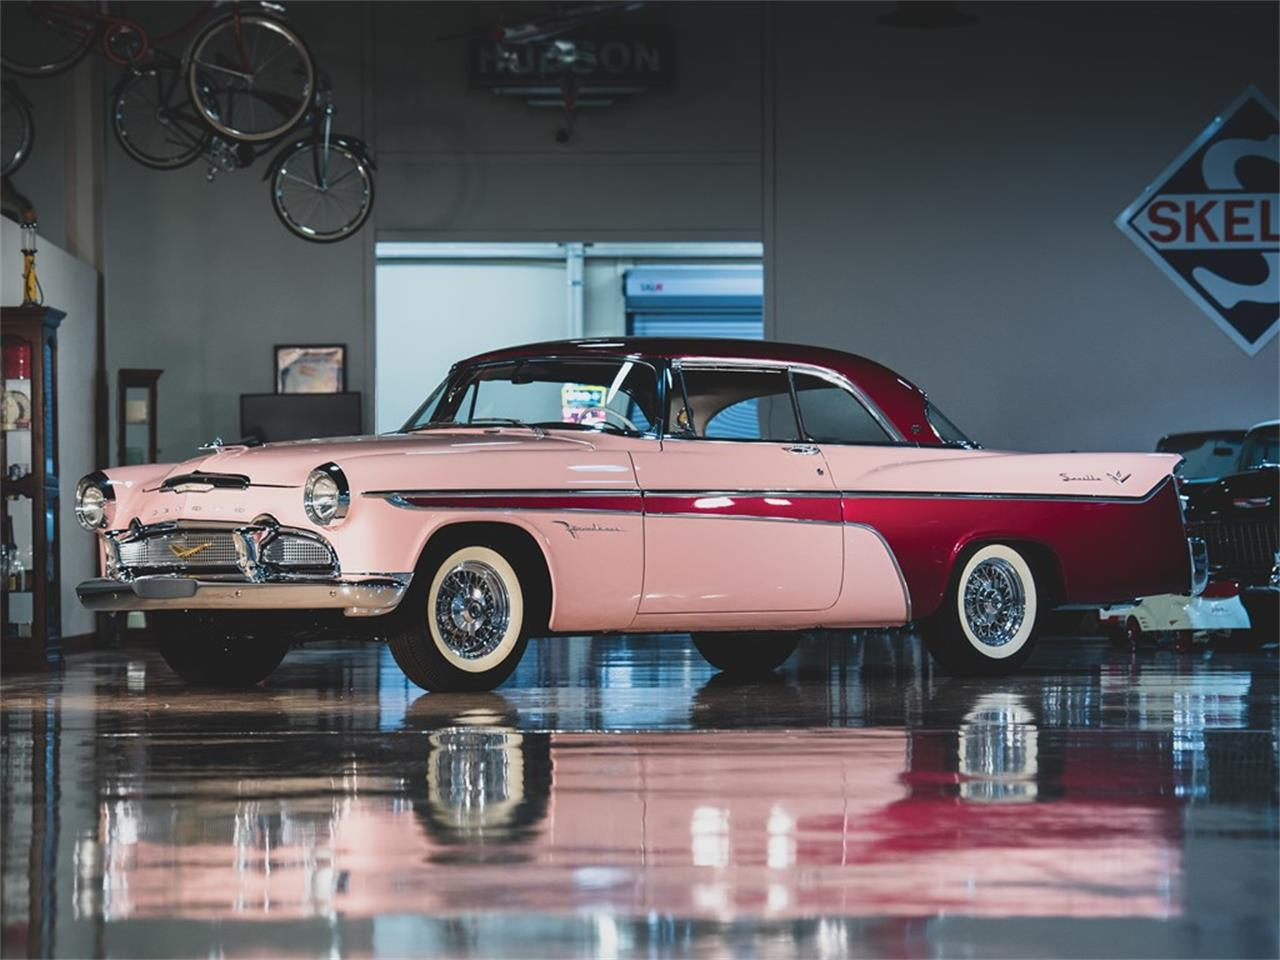 Large Picture of 1956 DeSoto Firedome located in Auburn Indiana Auction Vehicle Offered by RM Sotheby's - Q12R